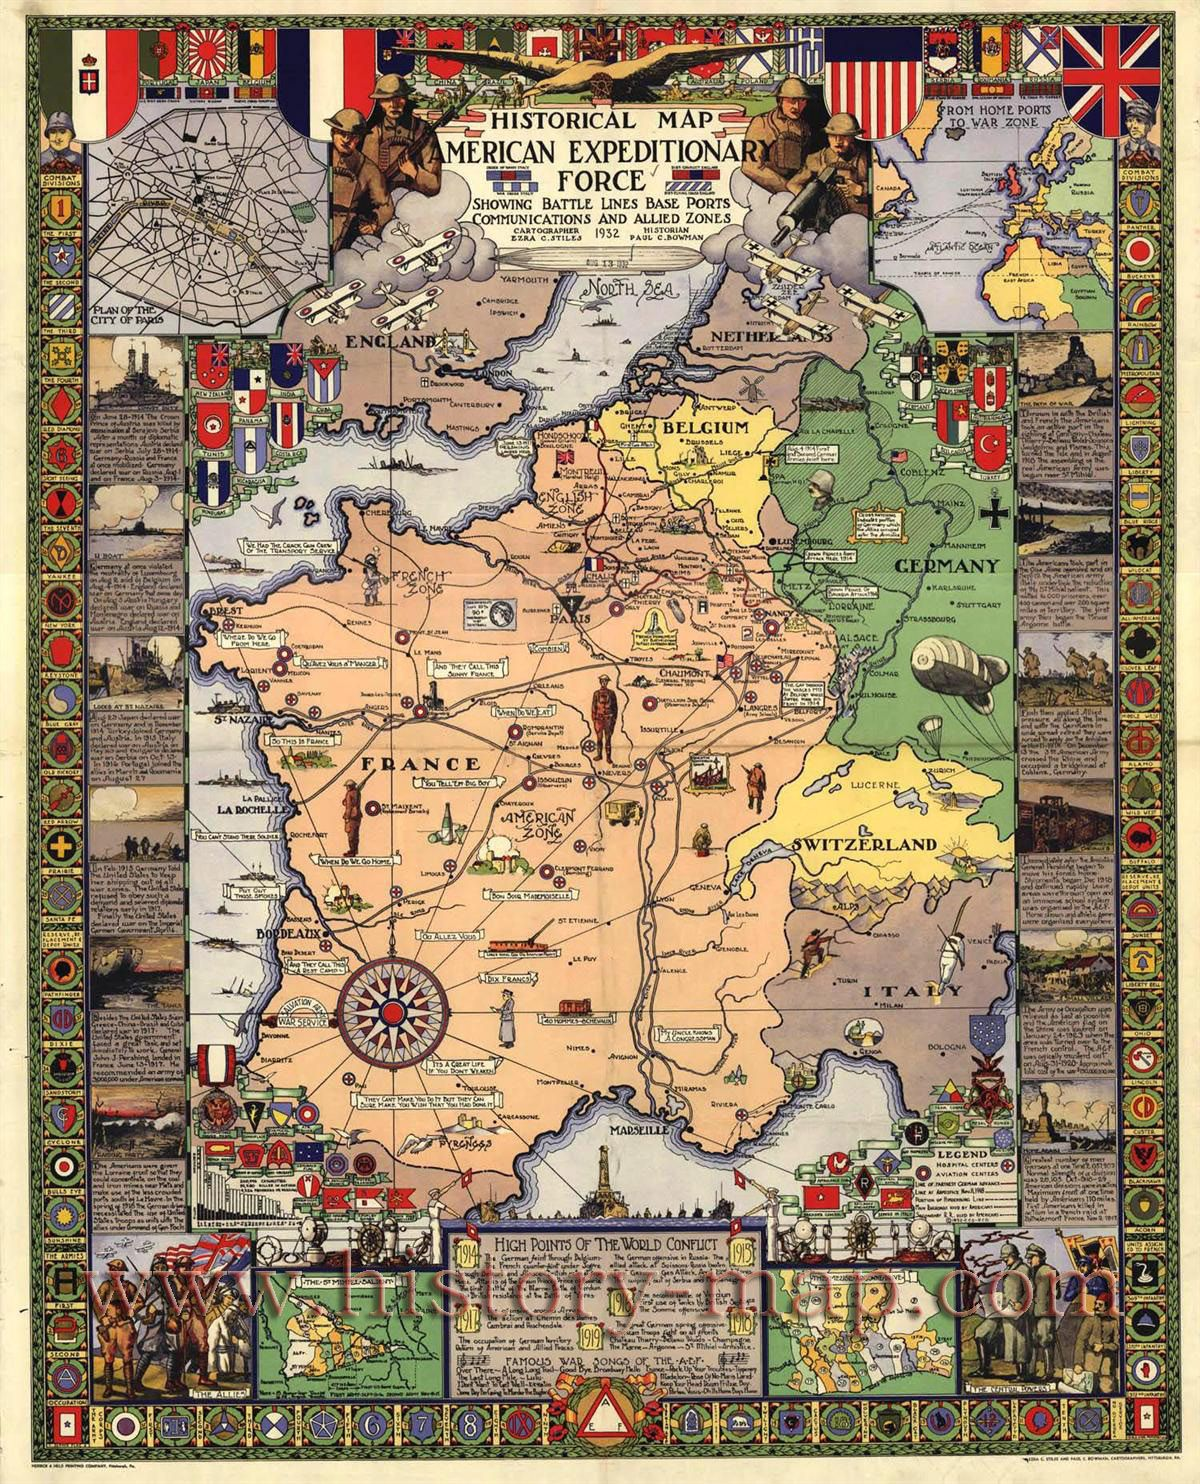 The worlds coolest maps all in one place wwi history and historian the worlds coolest maps all in one place gumiabroncs Choice Image